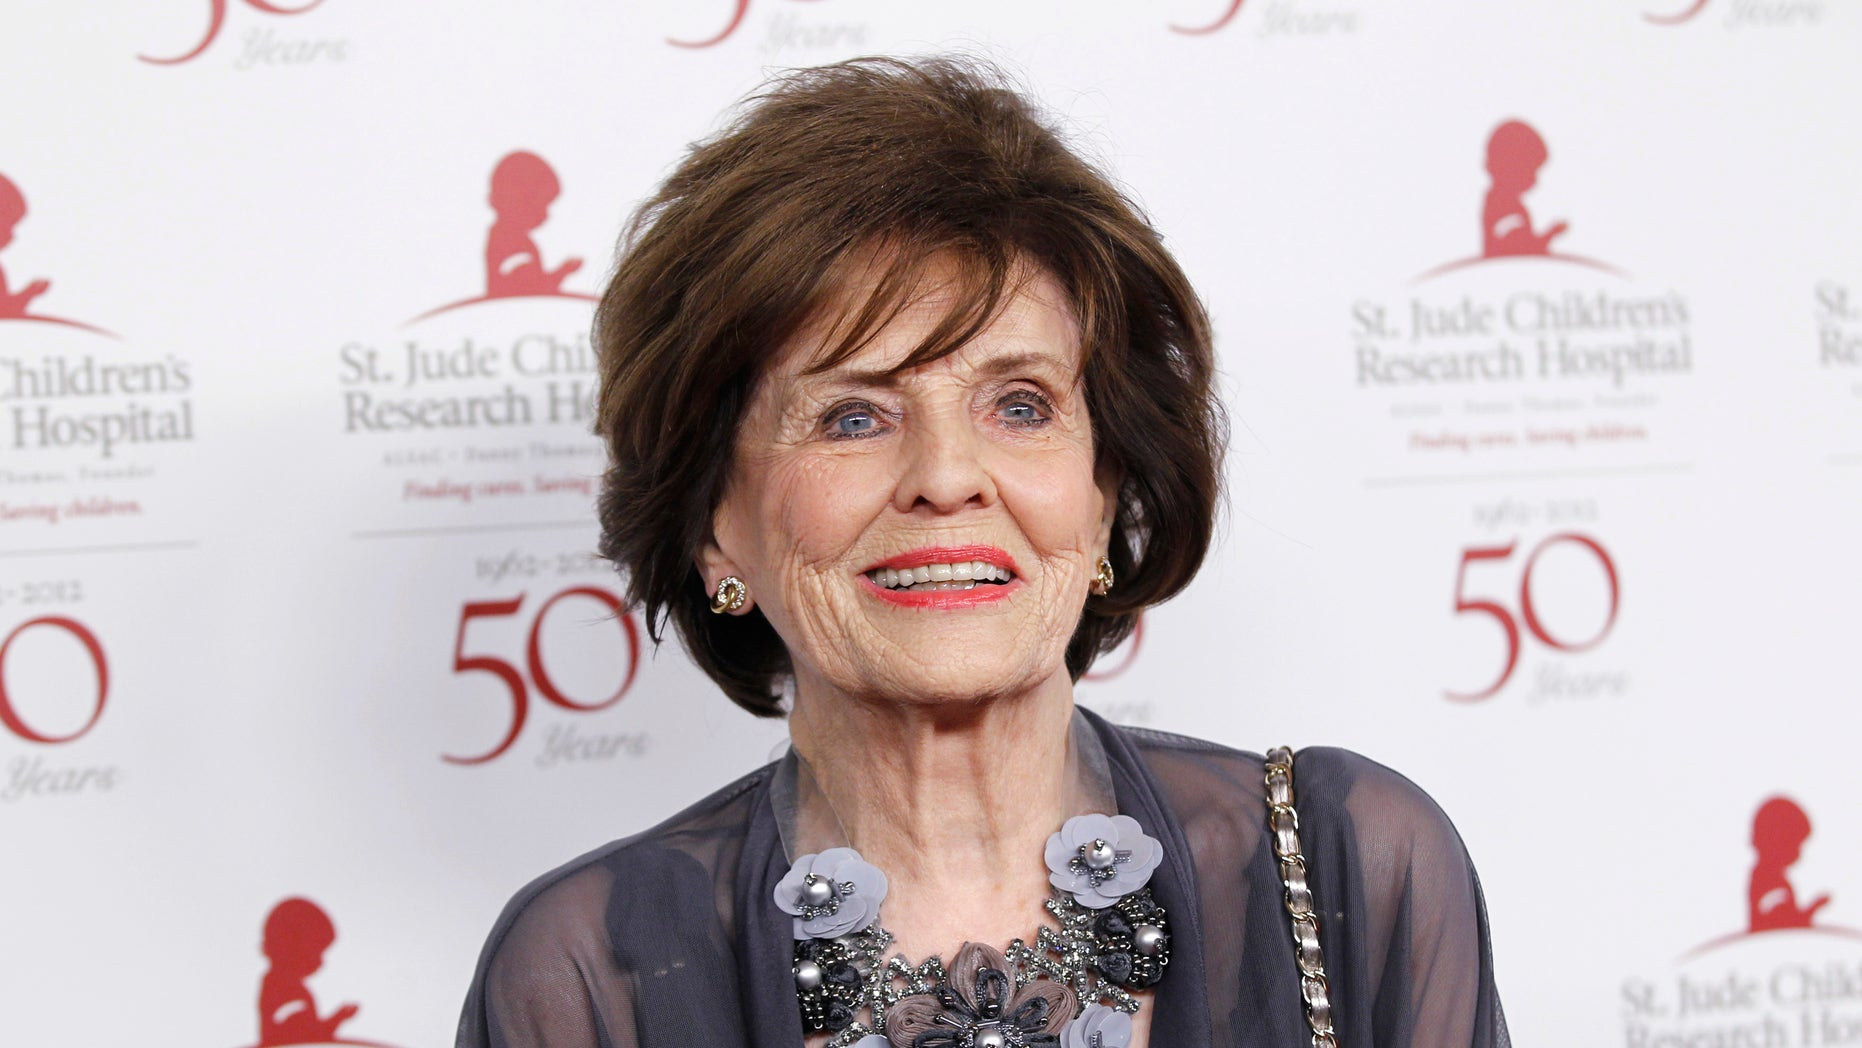 January 7, 2012. Actress Marjorie Lord poses at the benefit gala for the 50th anniversary of St. Jude Children's Research Hospital in Beverly Hills, California.